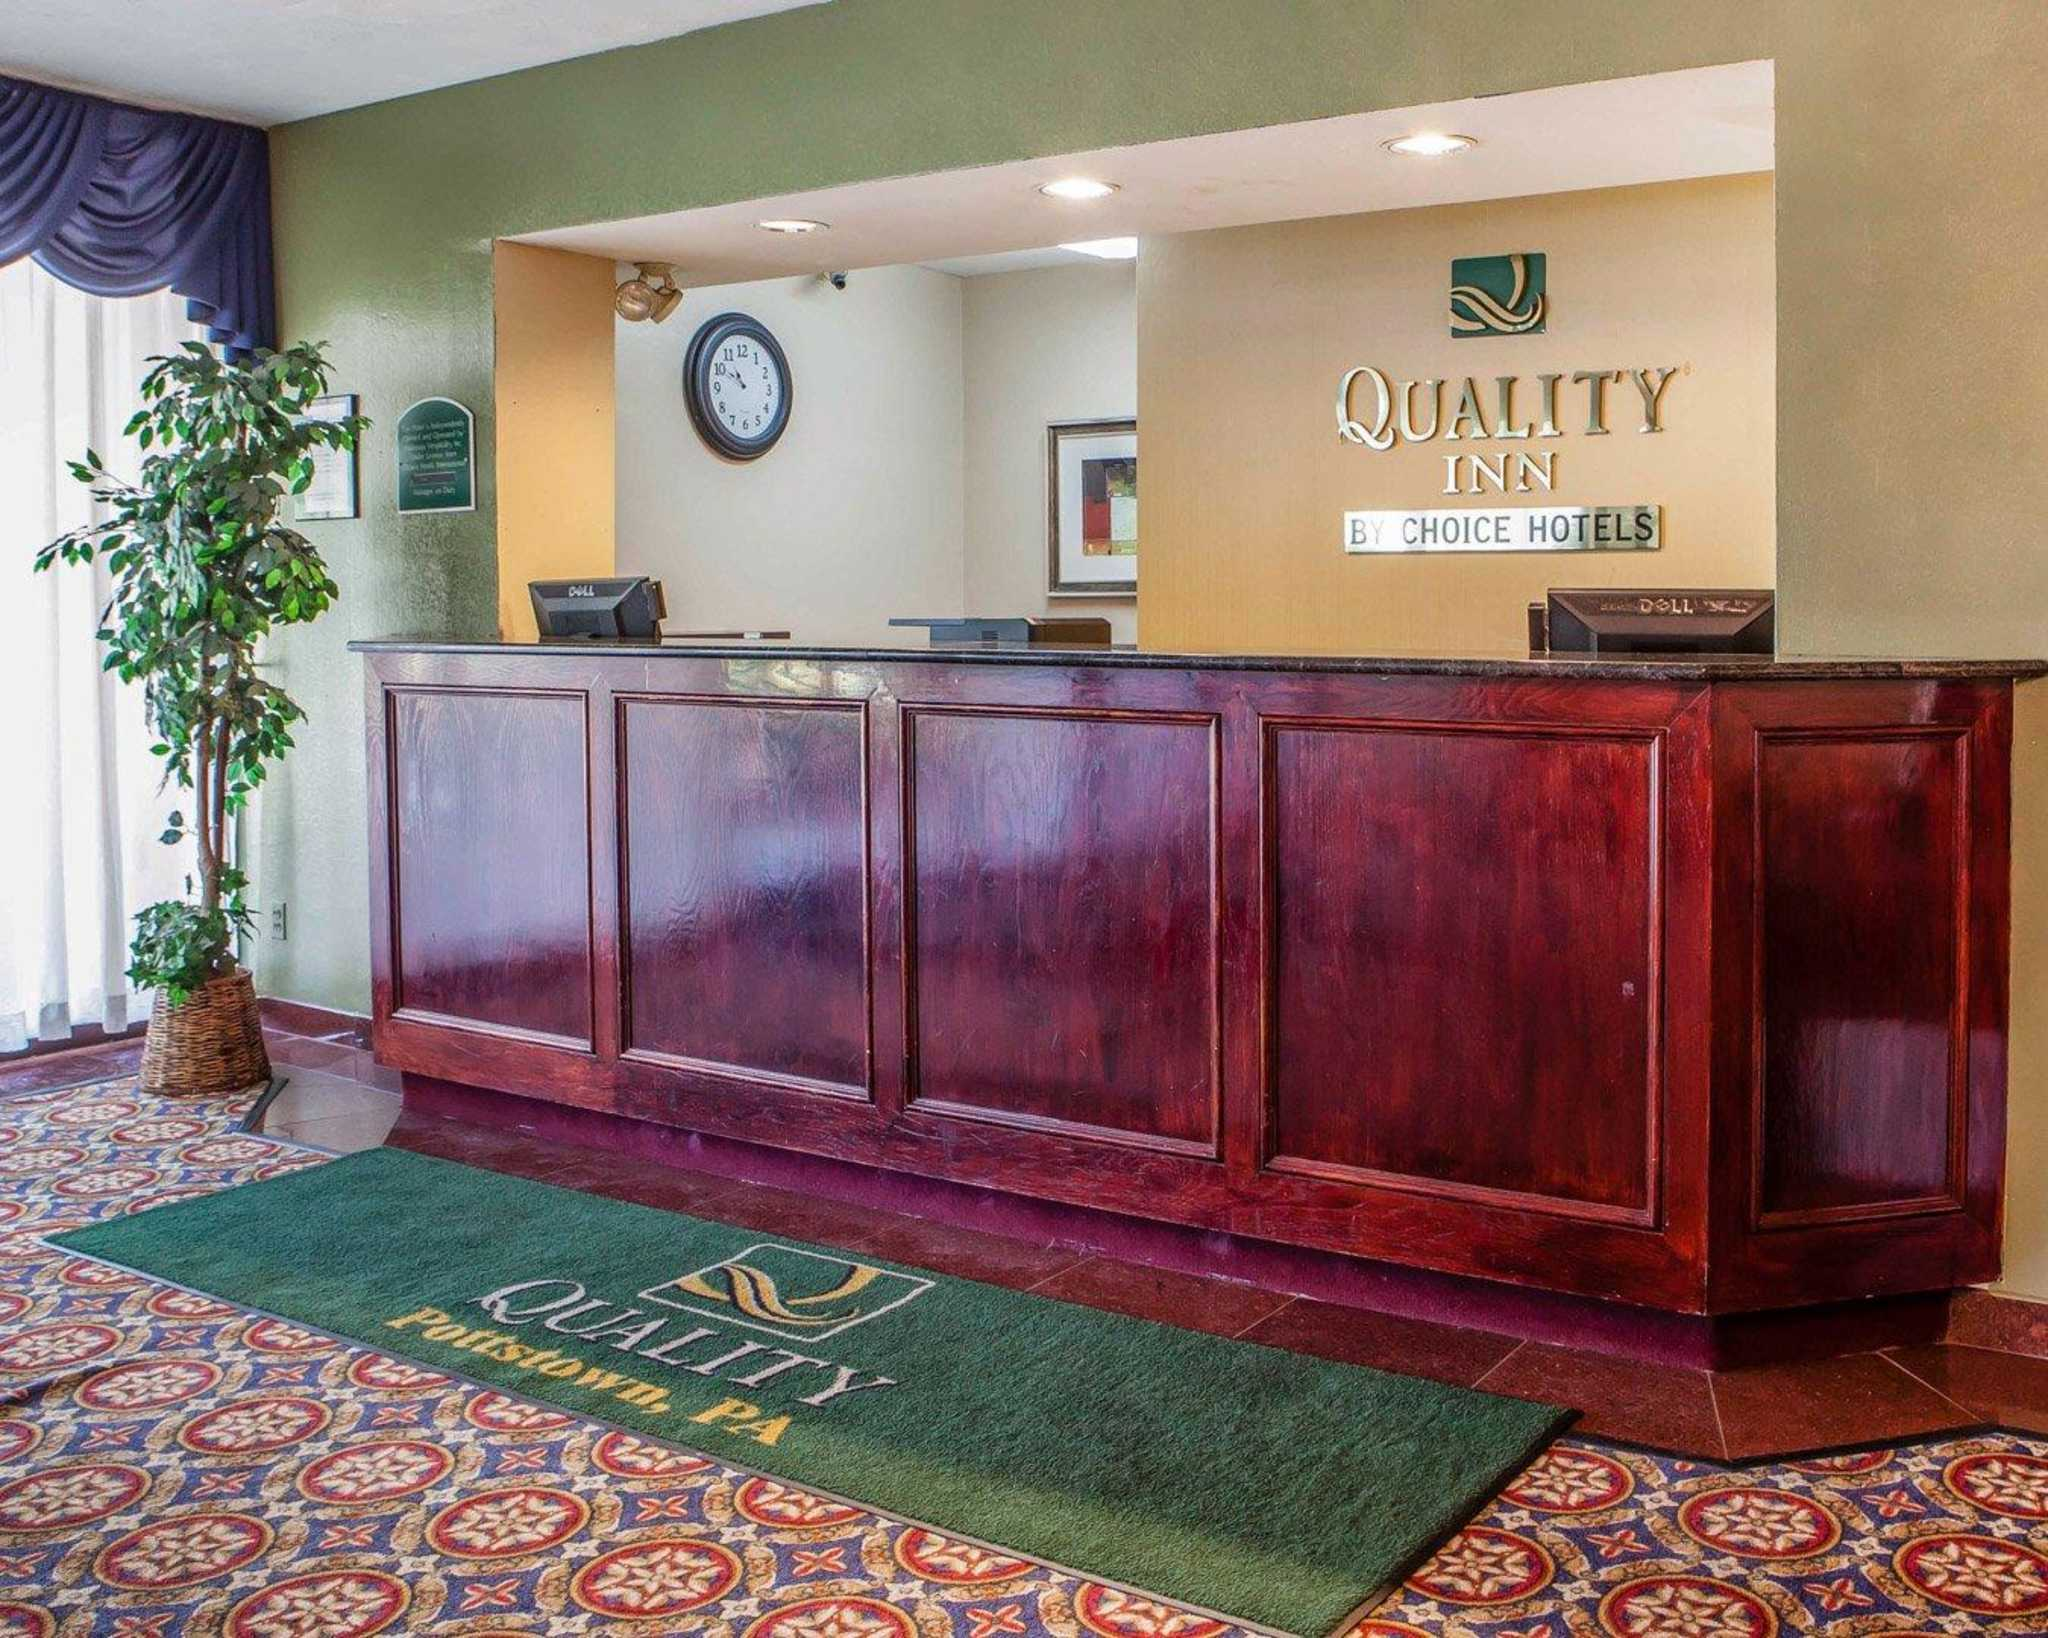 Quality Inn Pottstown image 14